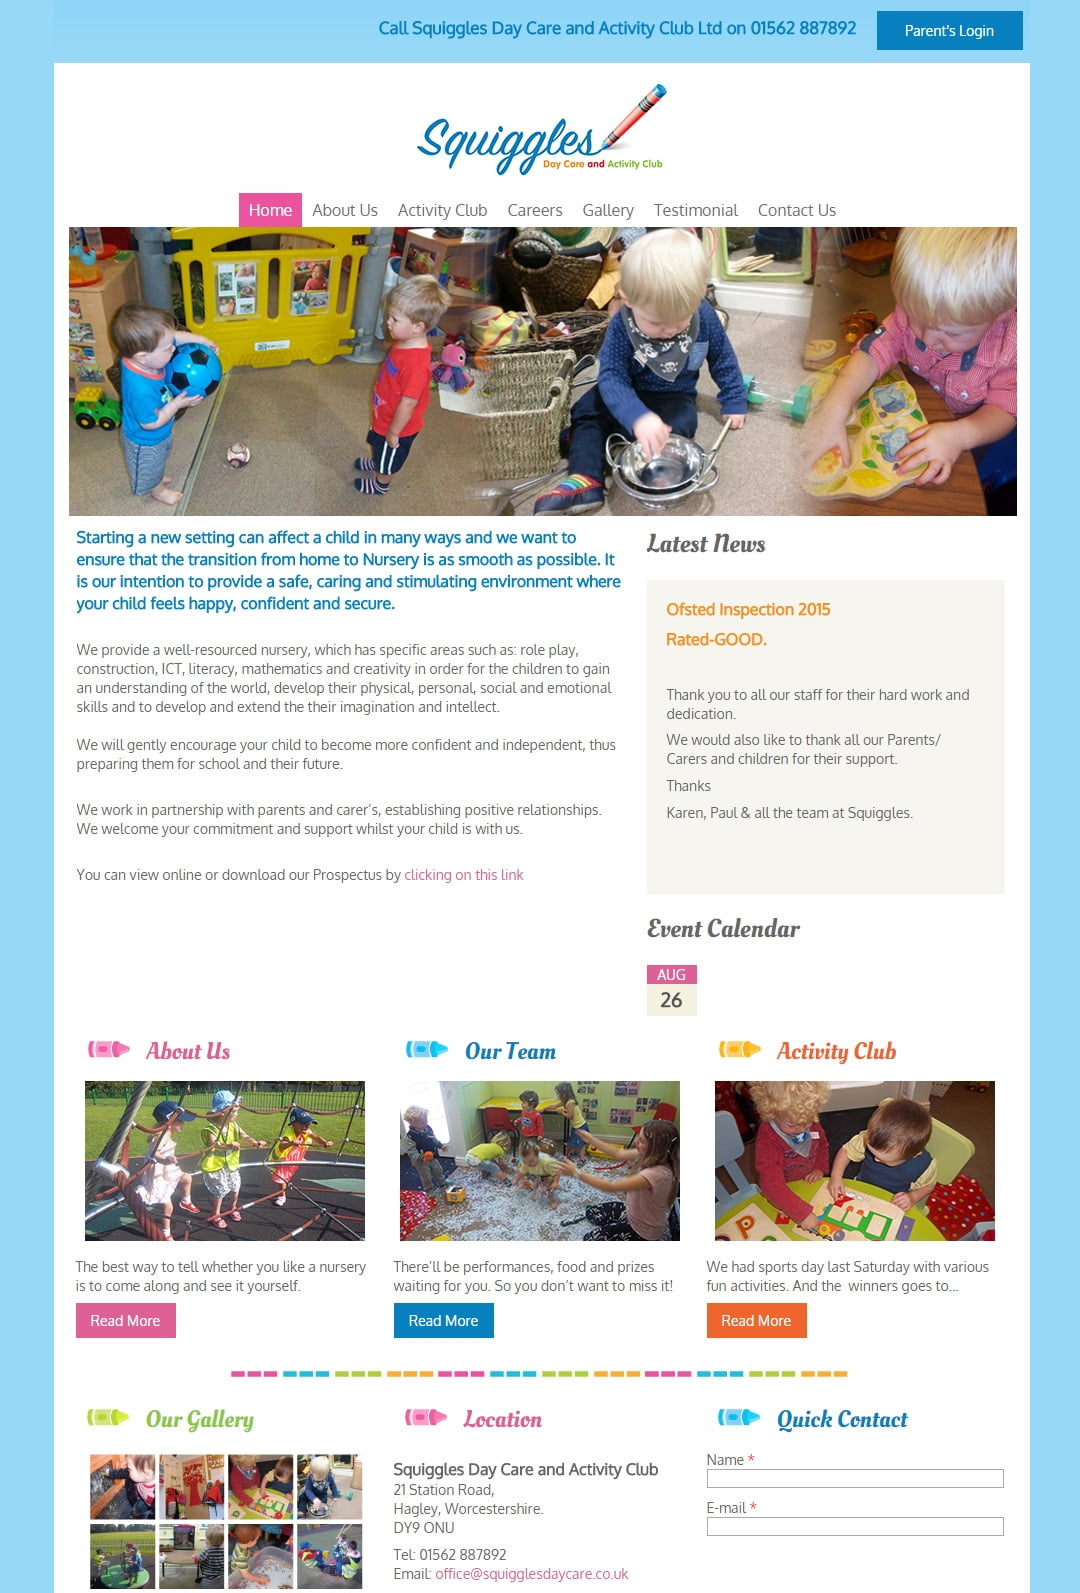 Squiggles Day Care and Activity Club Ltd